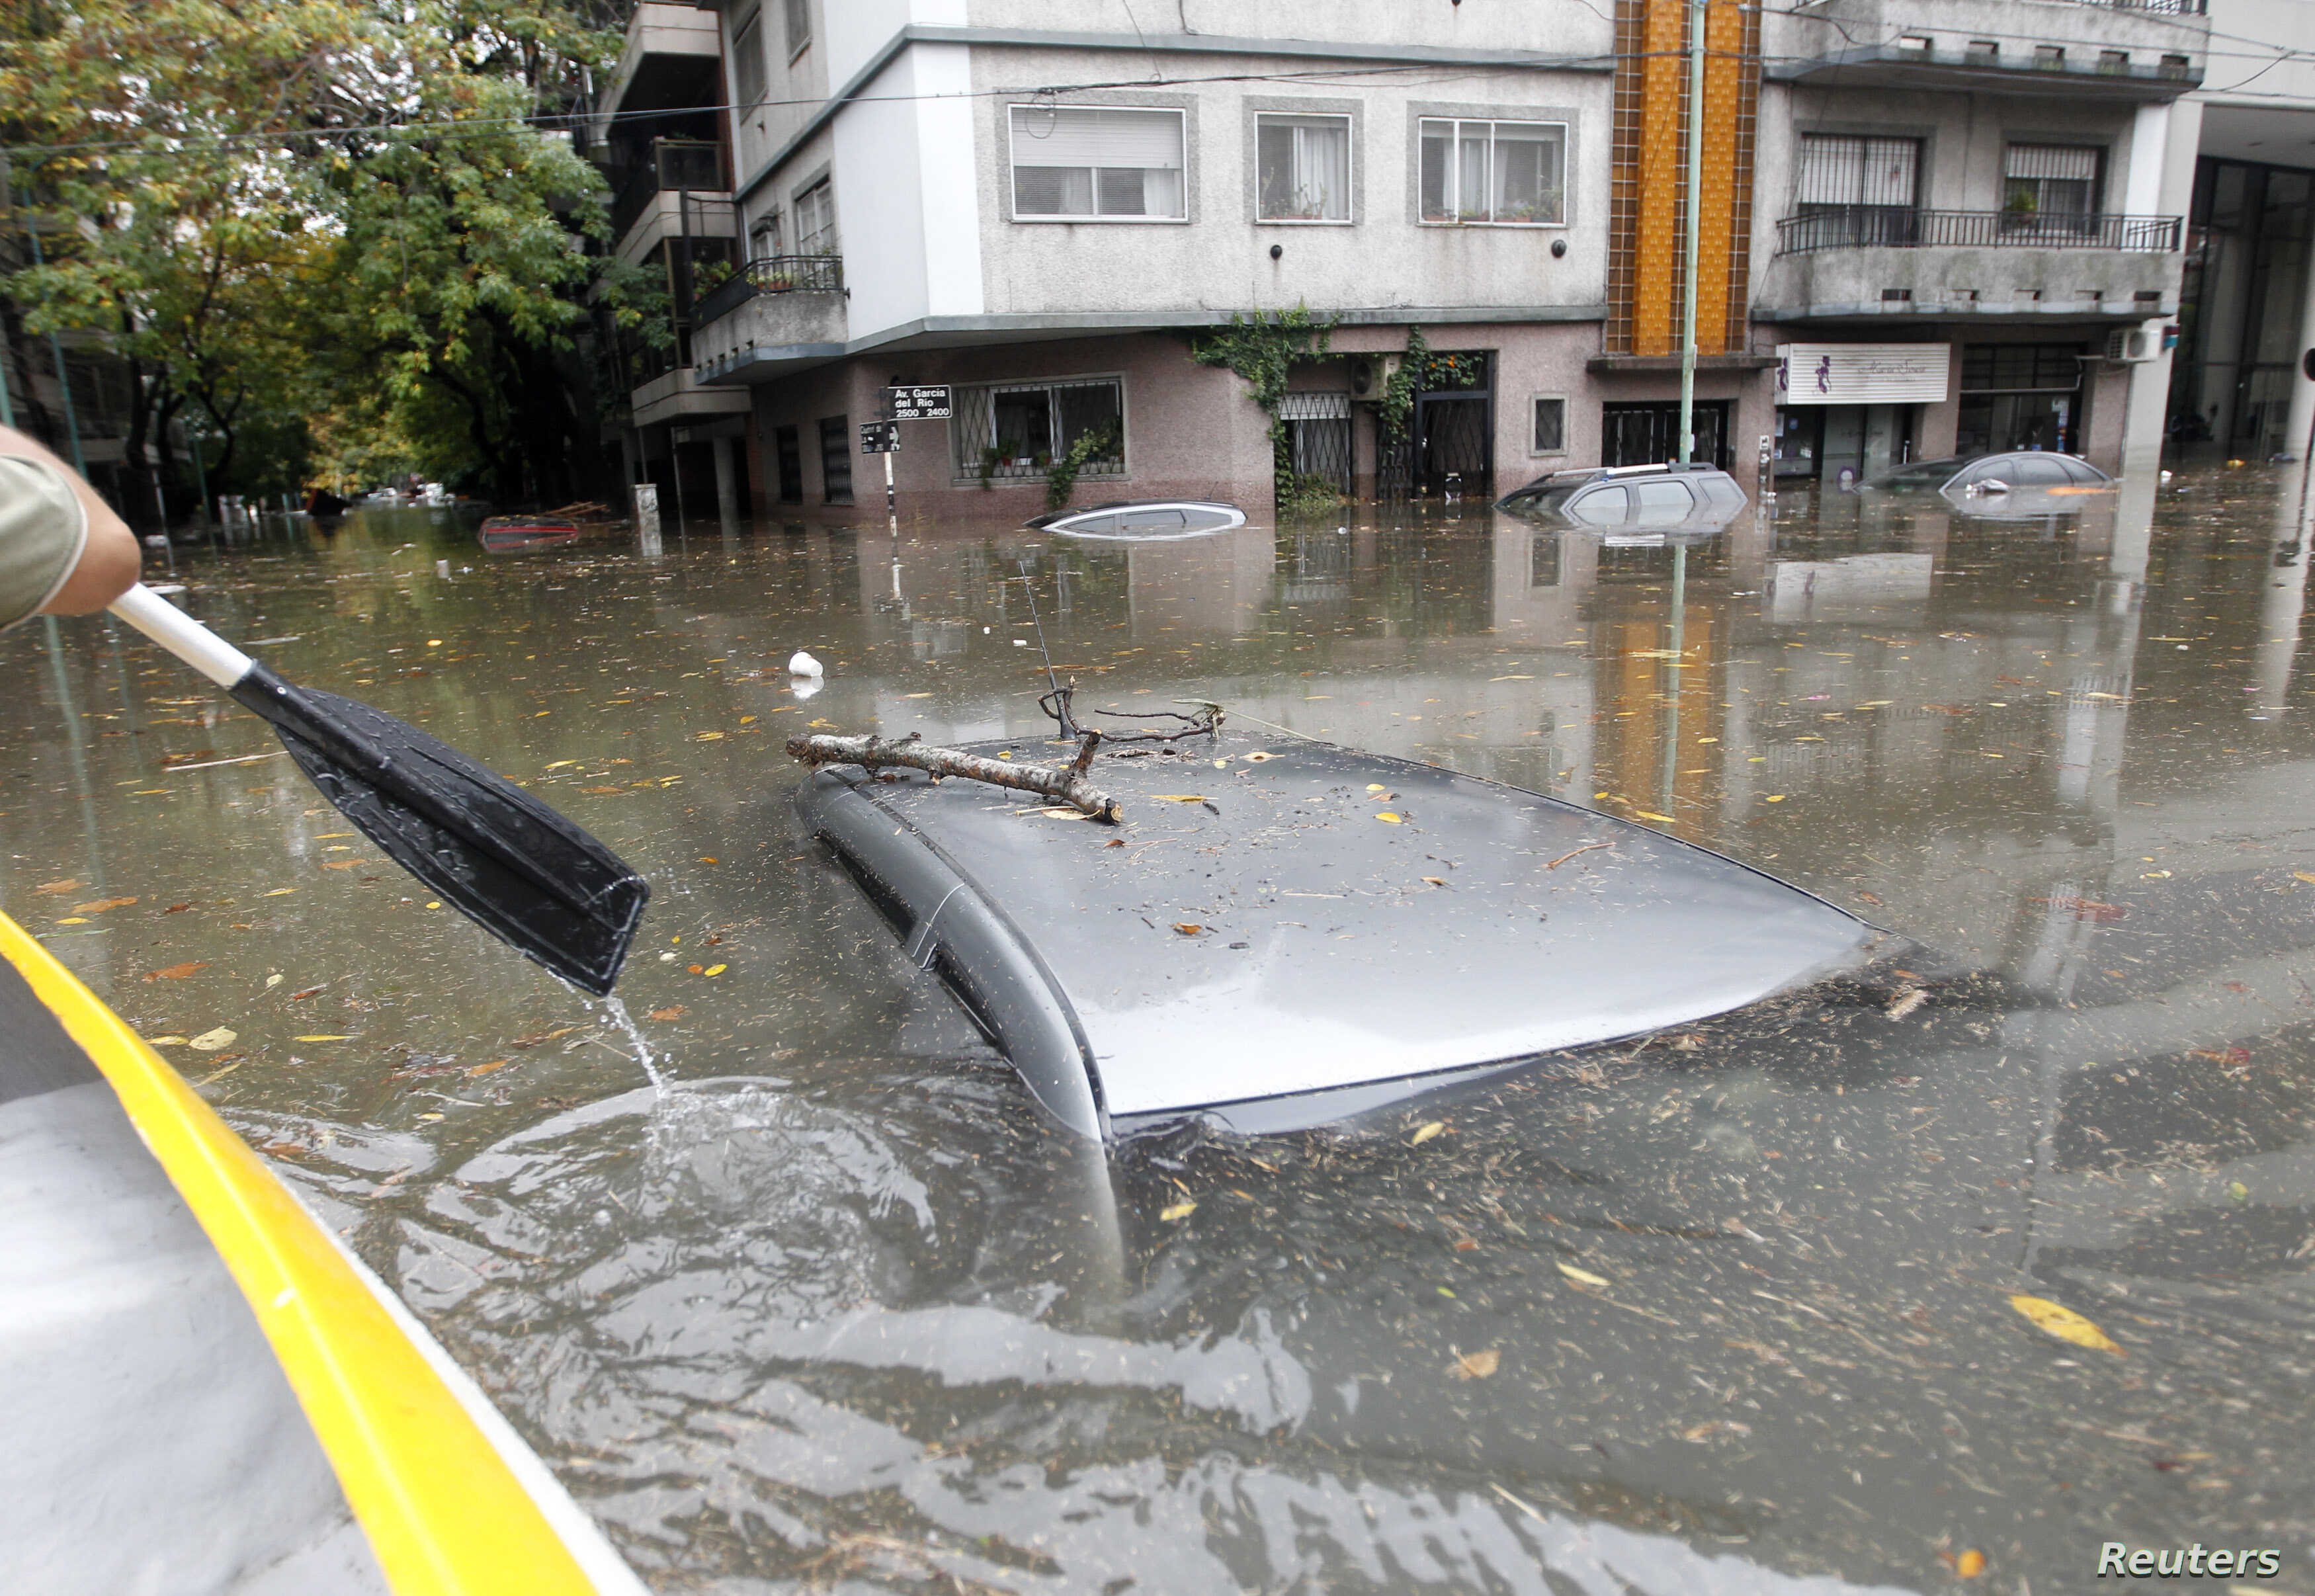 Submerged cars are seen in a flooded street after a rainstorm in Buenos Aires, Argentina, April 2, 2013. Thunderstorms damaged property and vehicles, cut power and caused delays on flights in Buenos Aires and its suburbs.